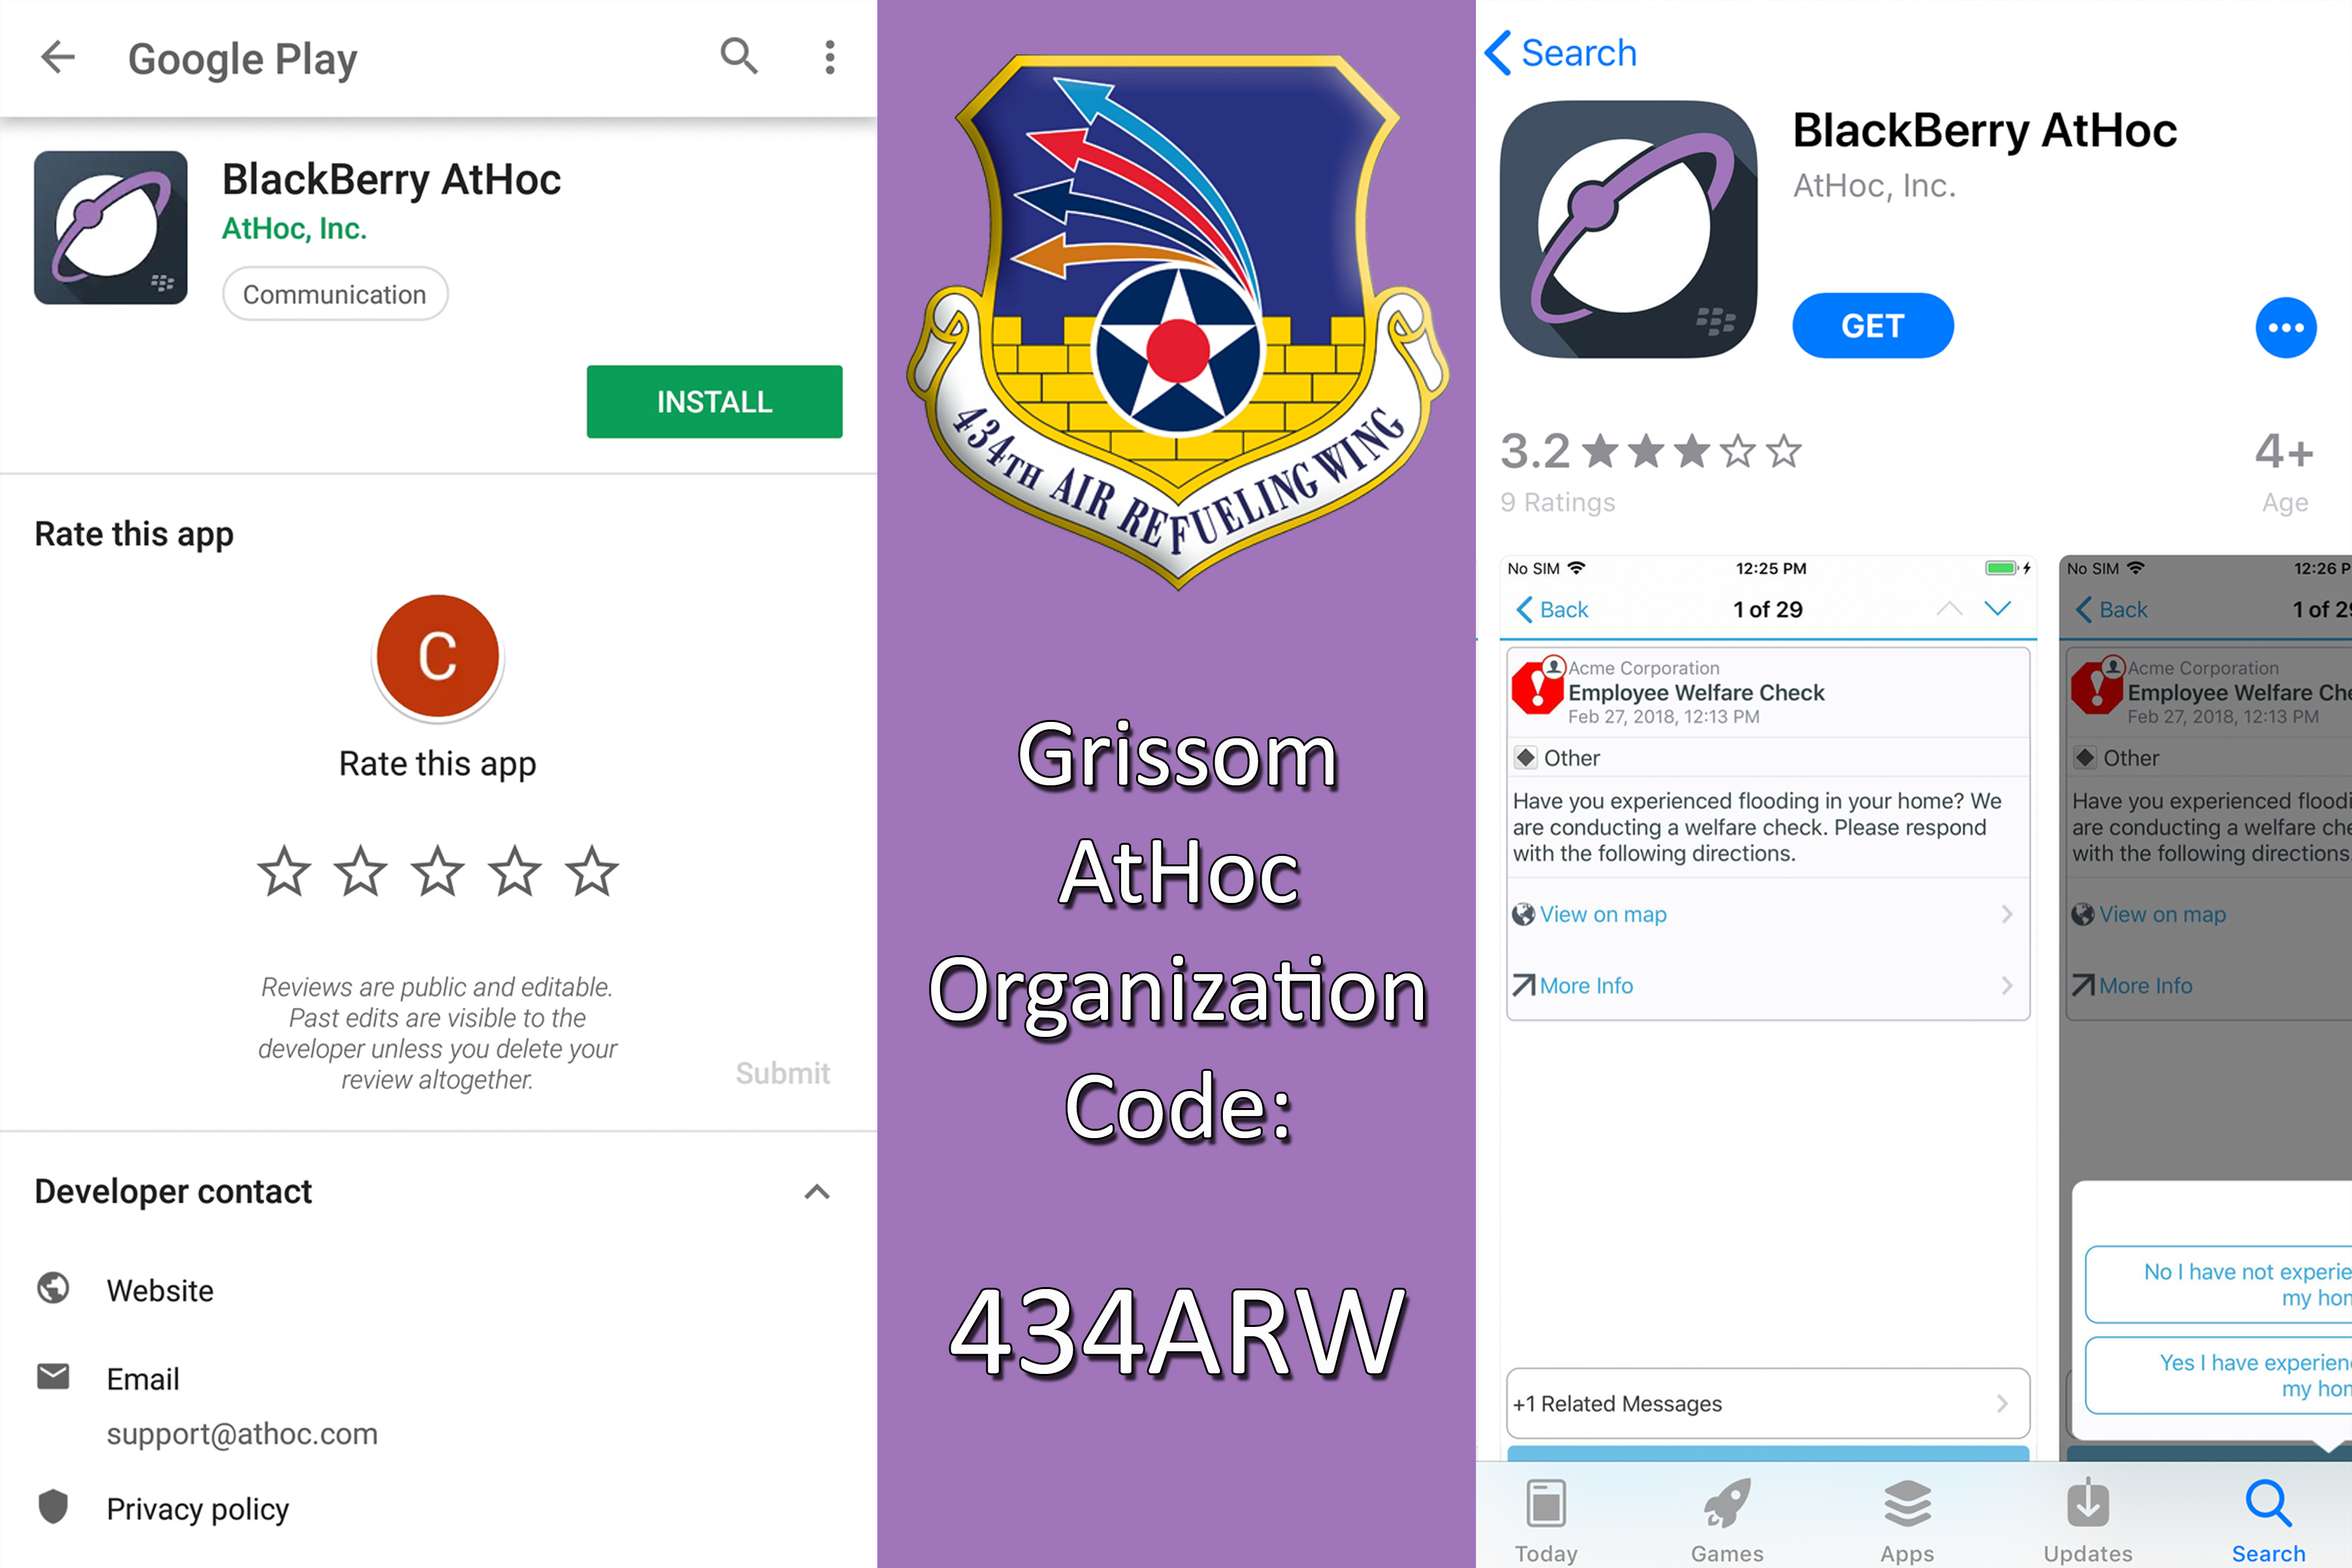 AtHoc alert system app now available to Grissom members > Grissom